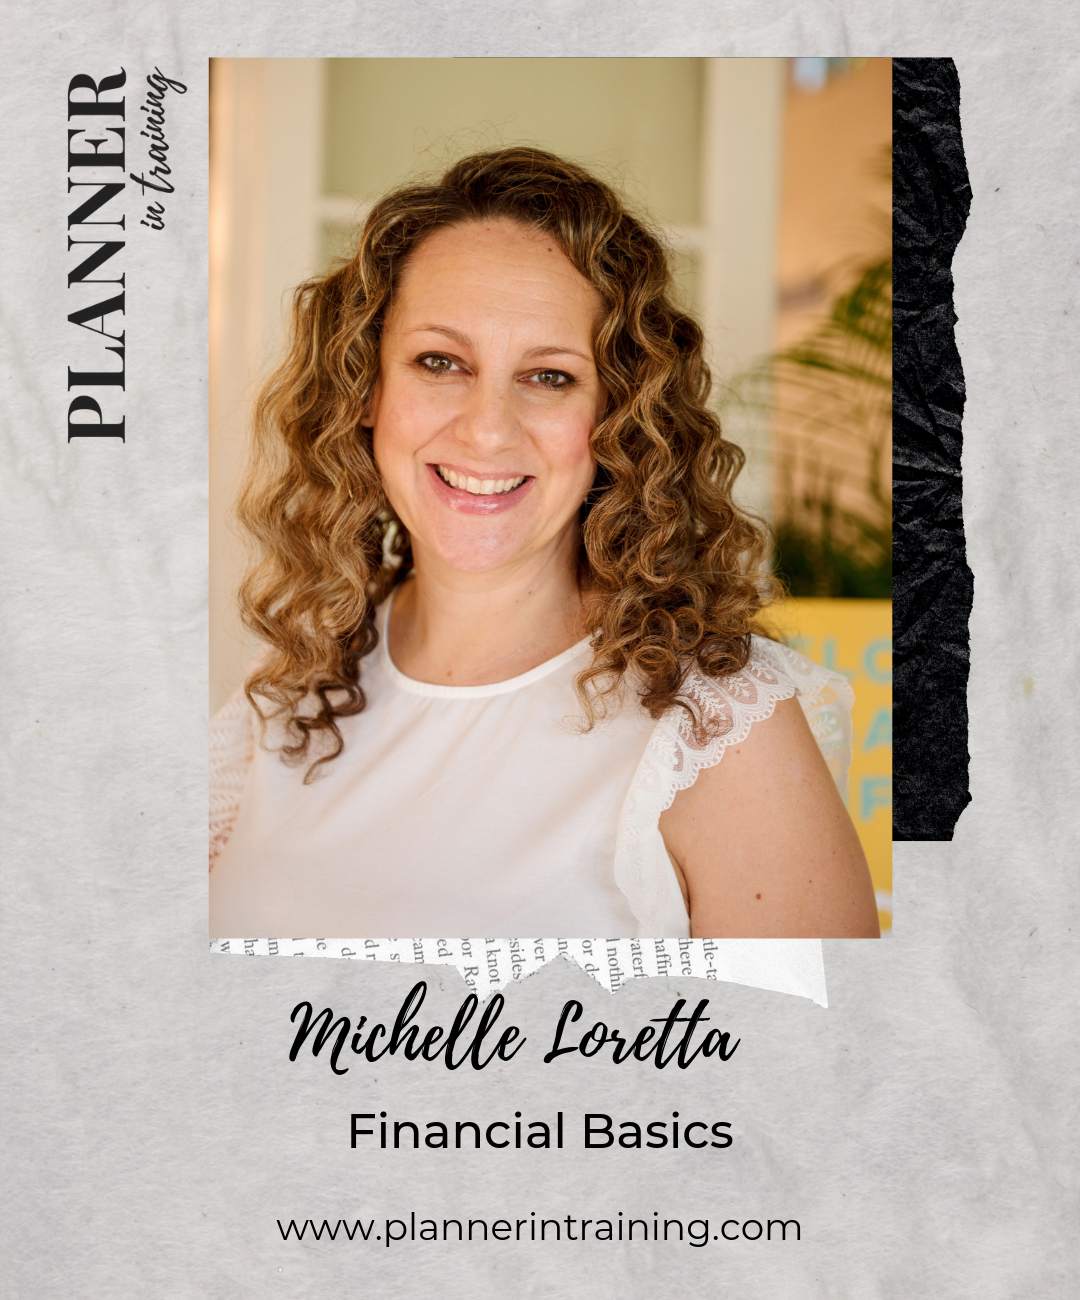 Michelle Loretta be sage wedding pros, financial basic for wedding pros. how to set your price for wedding pros